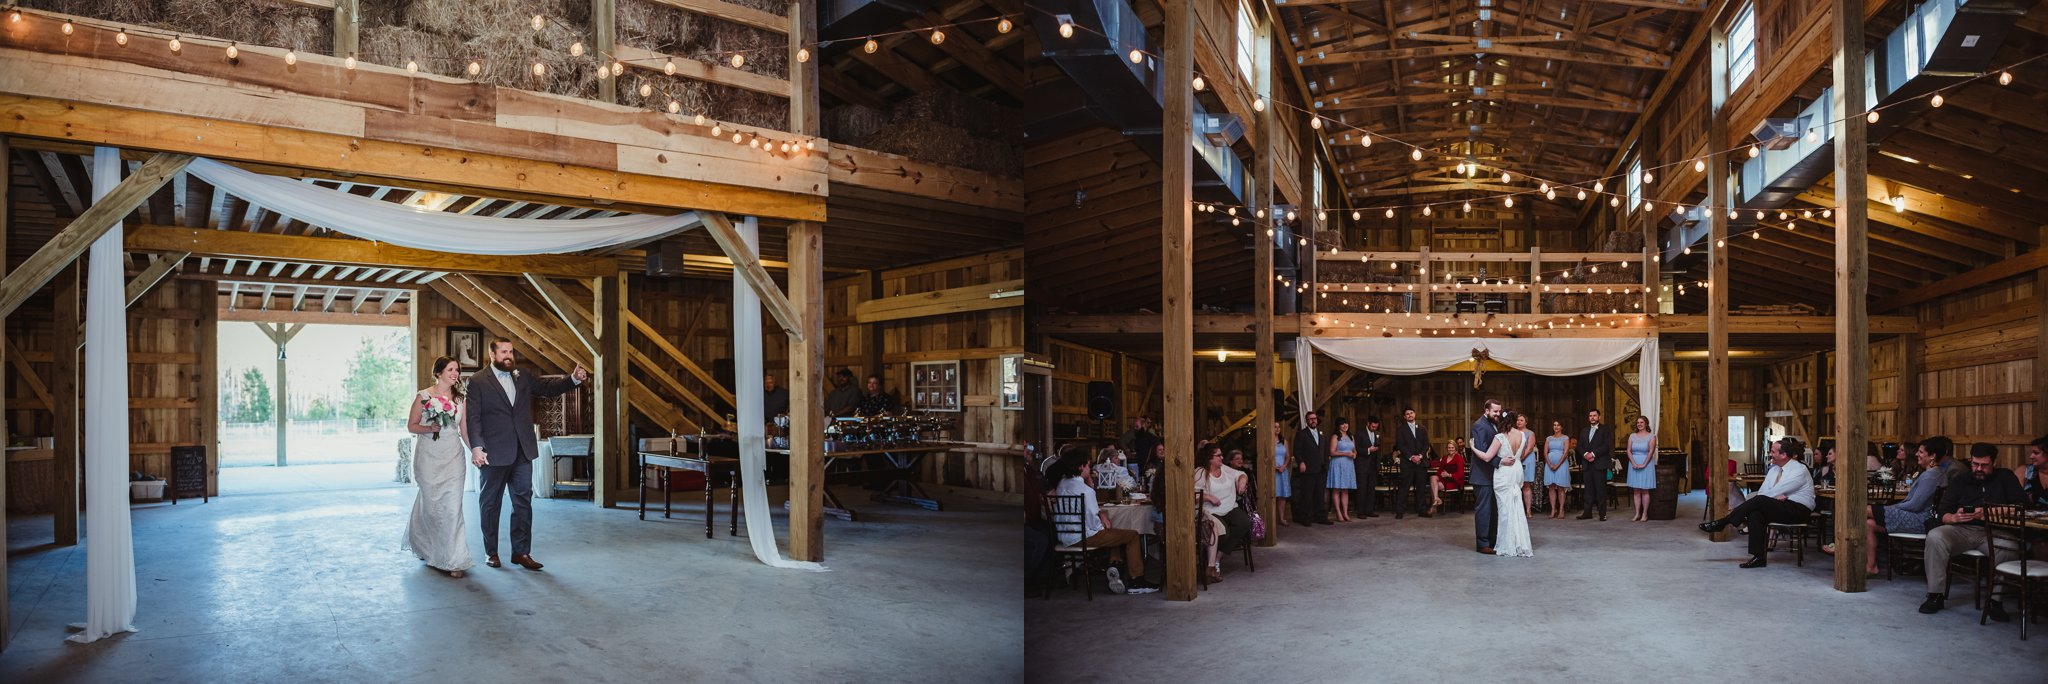 The bride and groom enter the barn for their wedding reception at Carlee Farm in Oxford, NC, taken by Rose Trail Images.